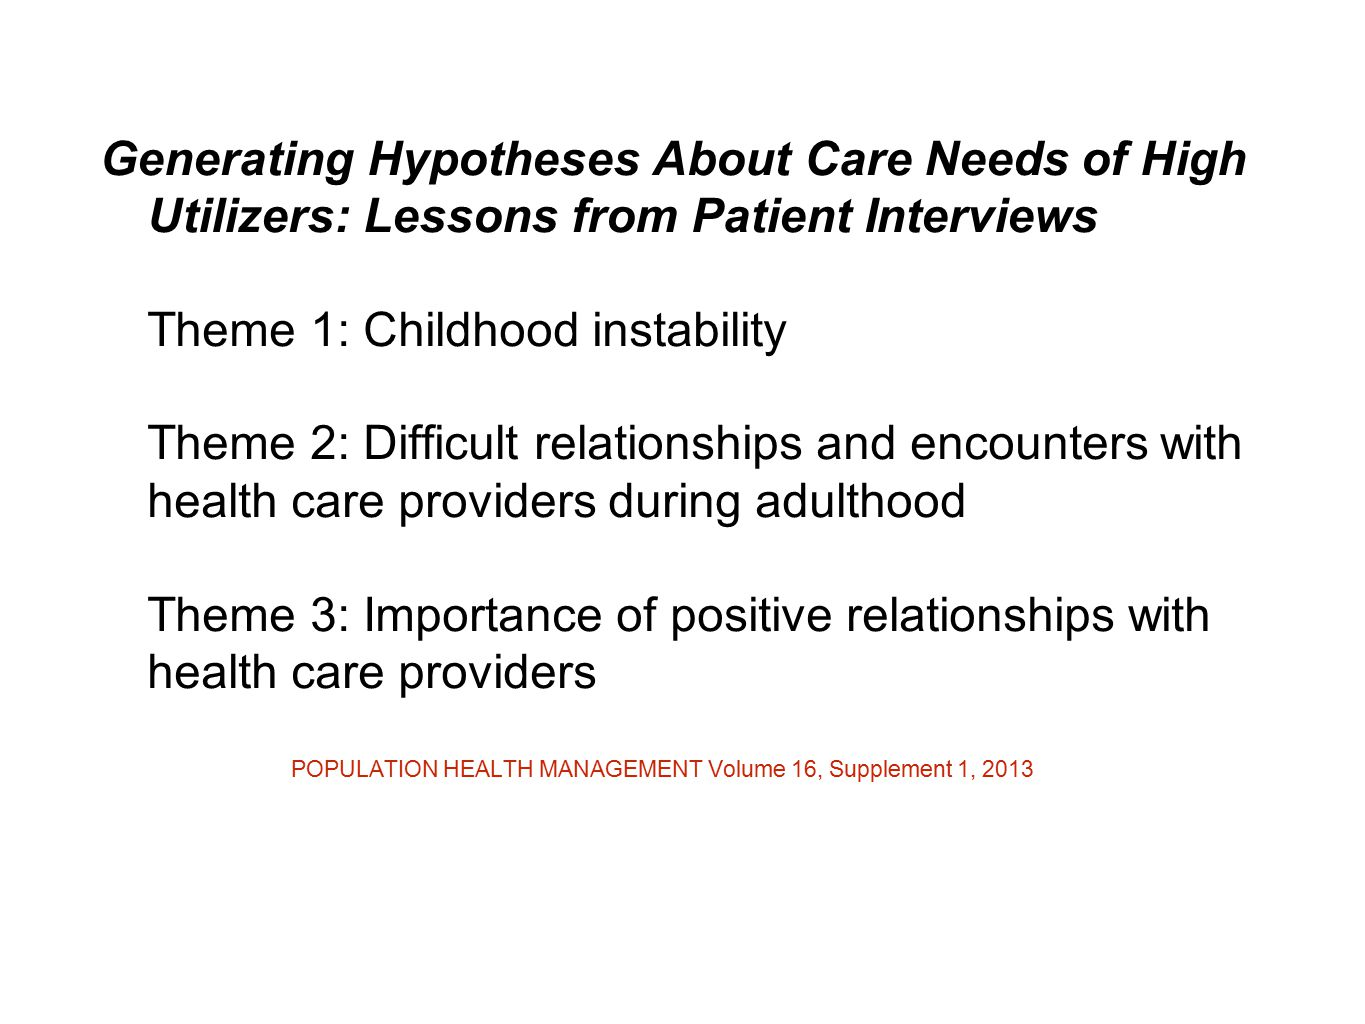 Generating Hypotheses About Care Needs of High Utilizers: Lessons from Patient Interviews Theme 1: Childhood instability Theme 2: Difficult relationships and encounters with health care providers during adulthood Theme 3: Importance of positive relationships with health care providers POPULATION HEALTH MANAGEMENT Volume 16, Supplement 1, 2013